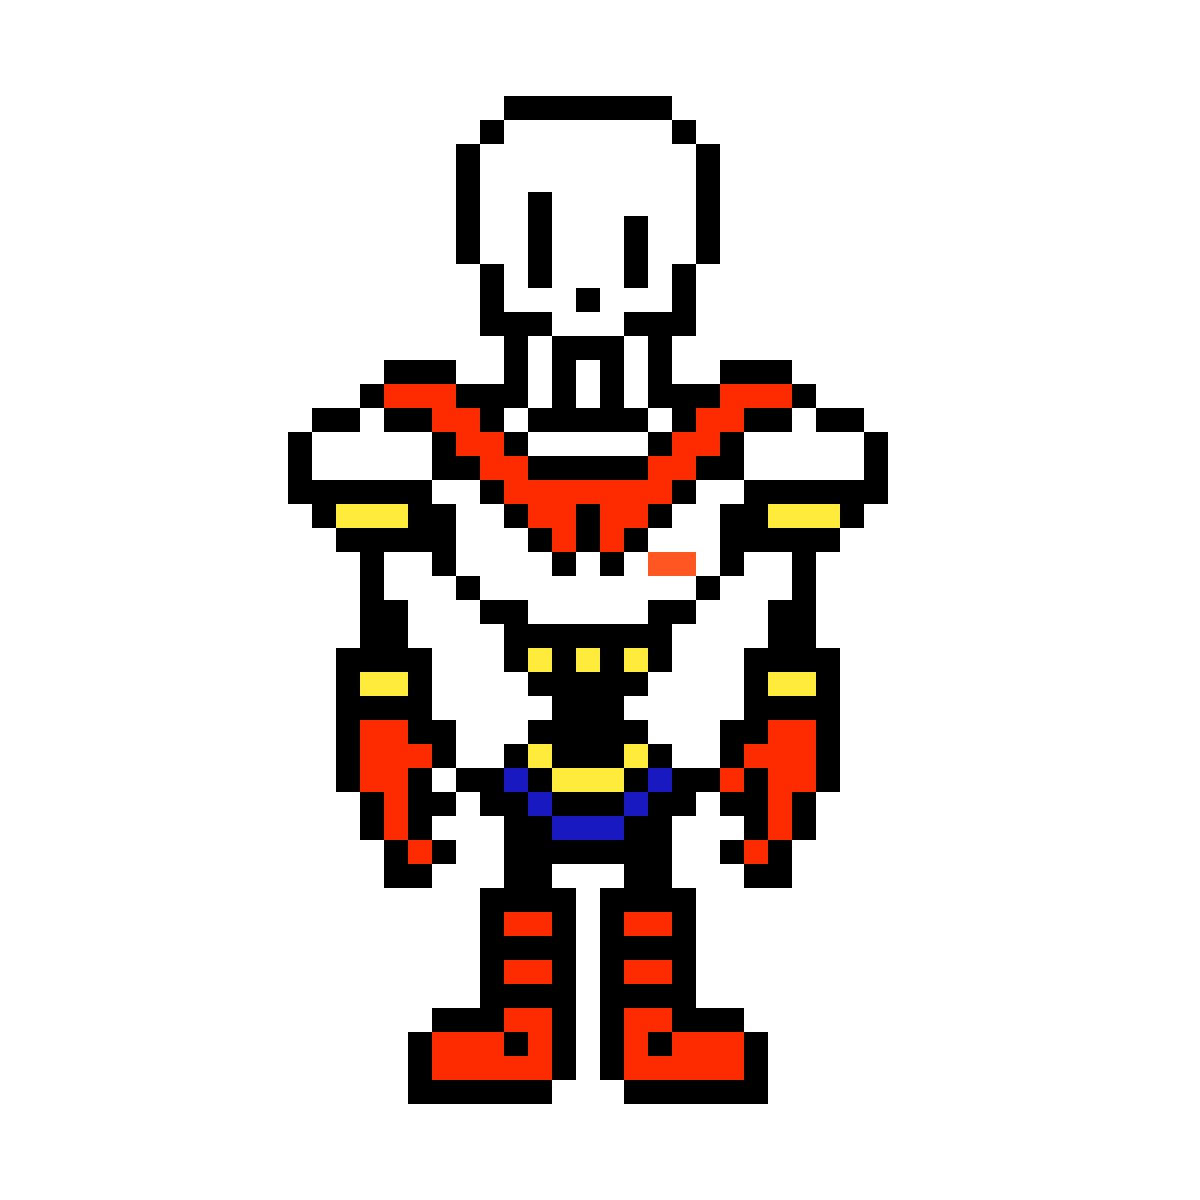 Papyrus sprite png. Pixilart overworld by luong